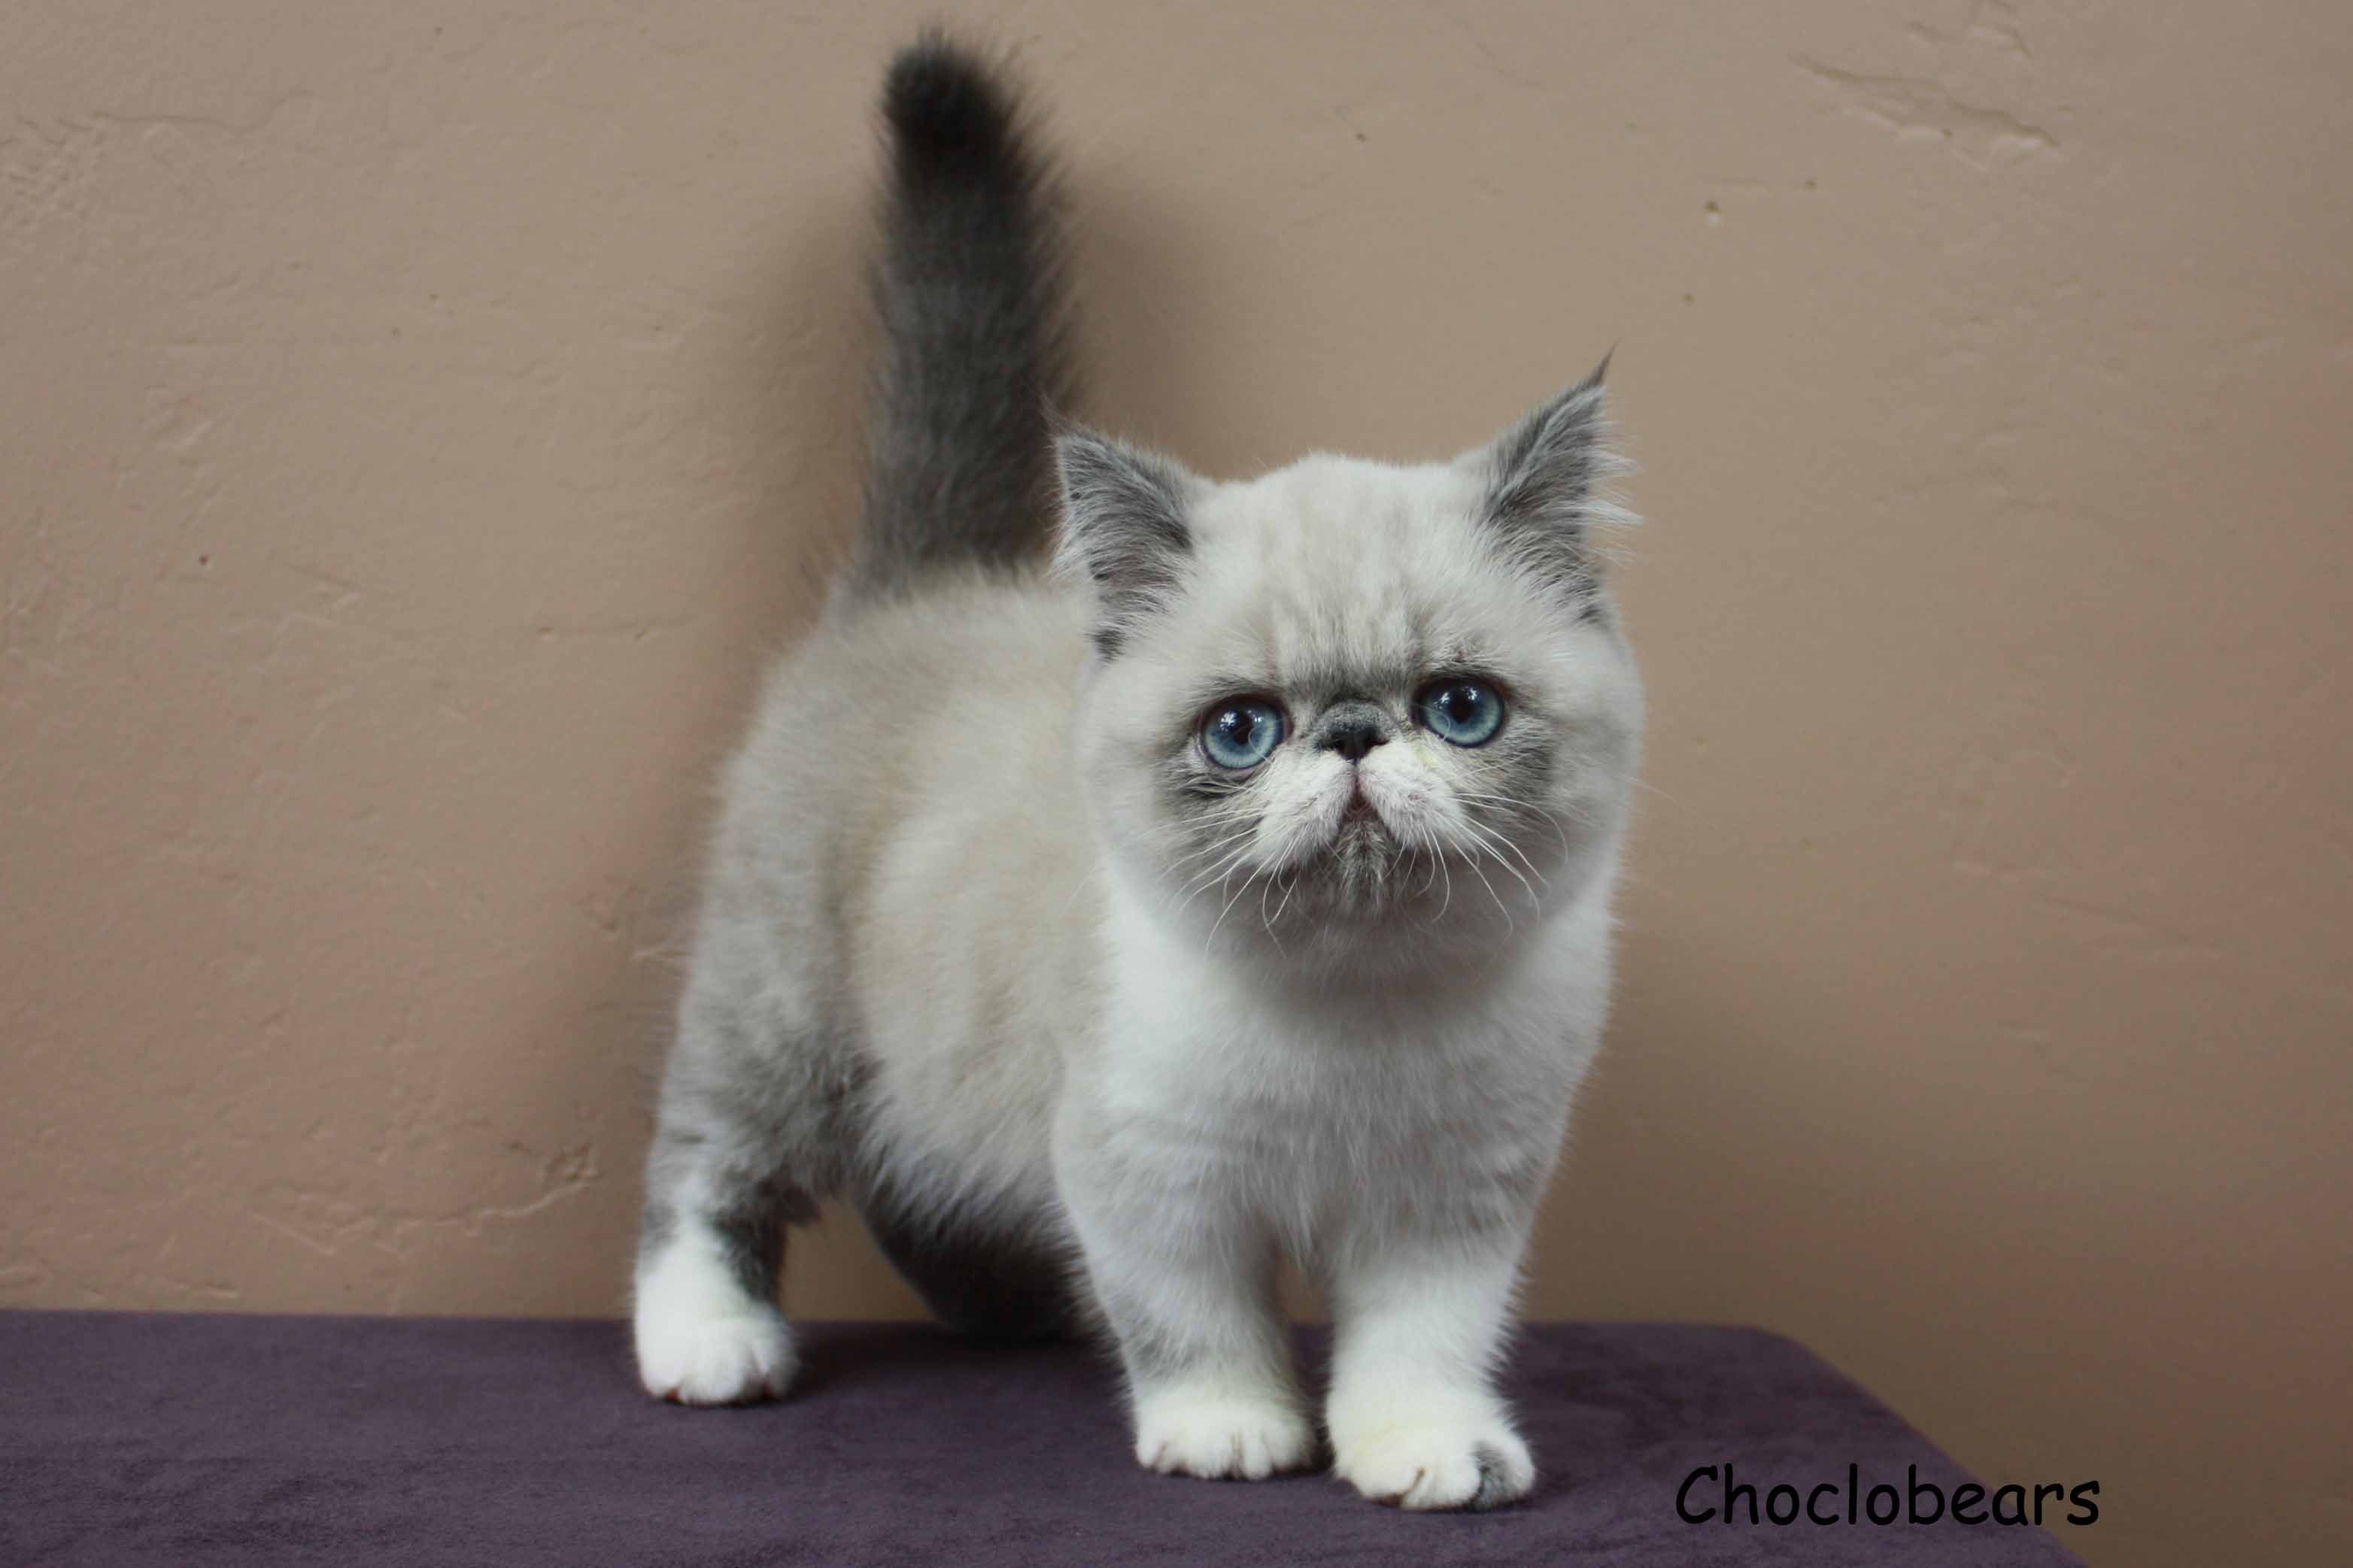 Choclobears Cattery Blue Point and White Exotic Shorthair Kitten ...